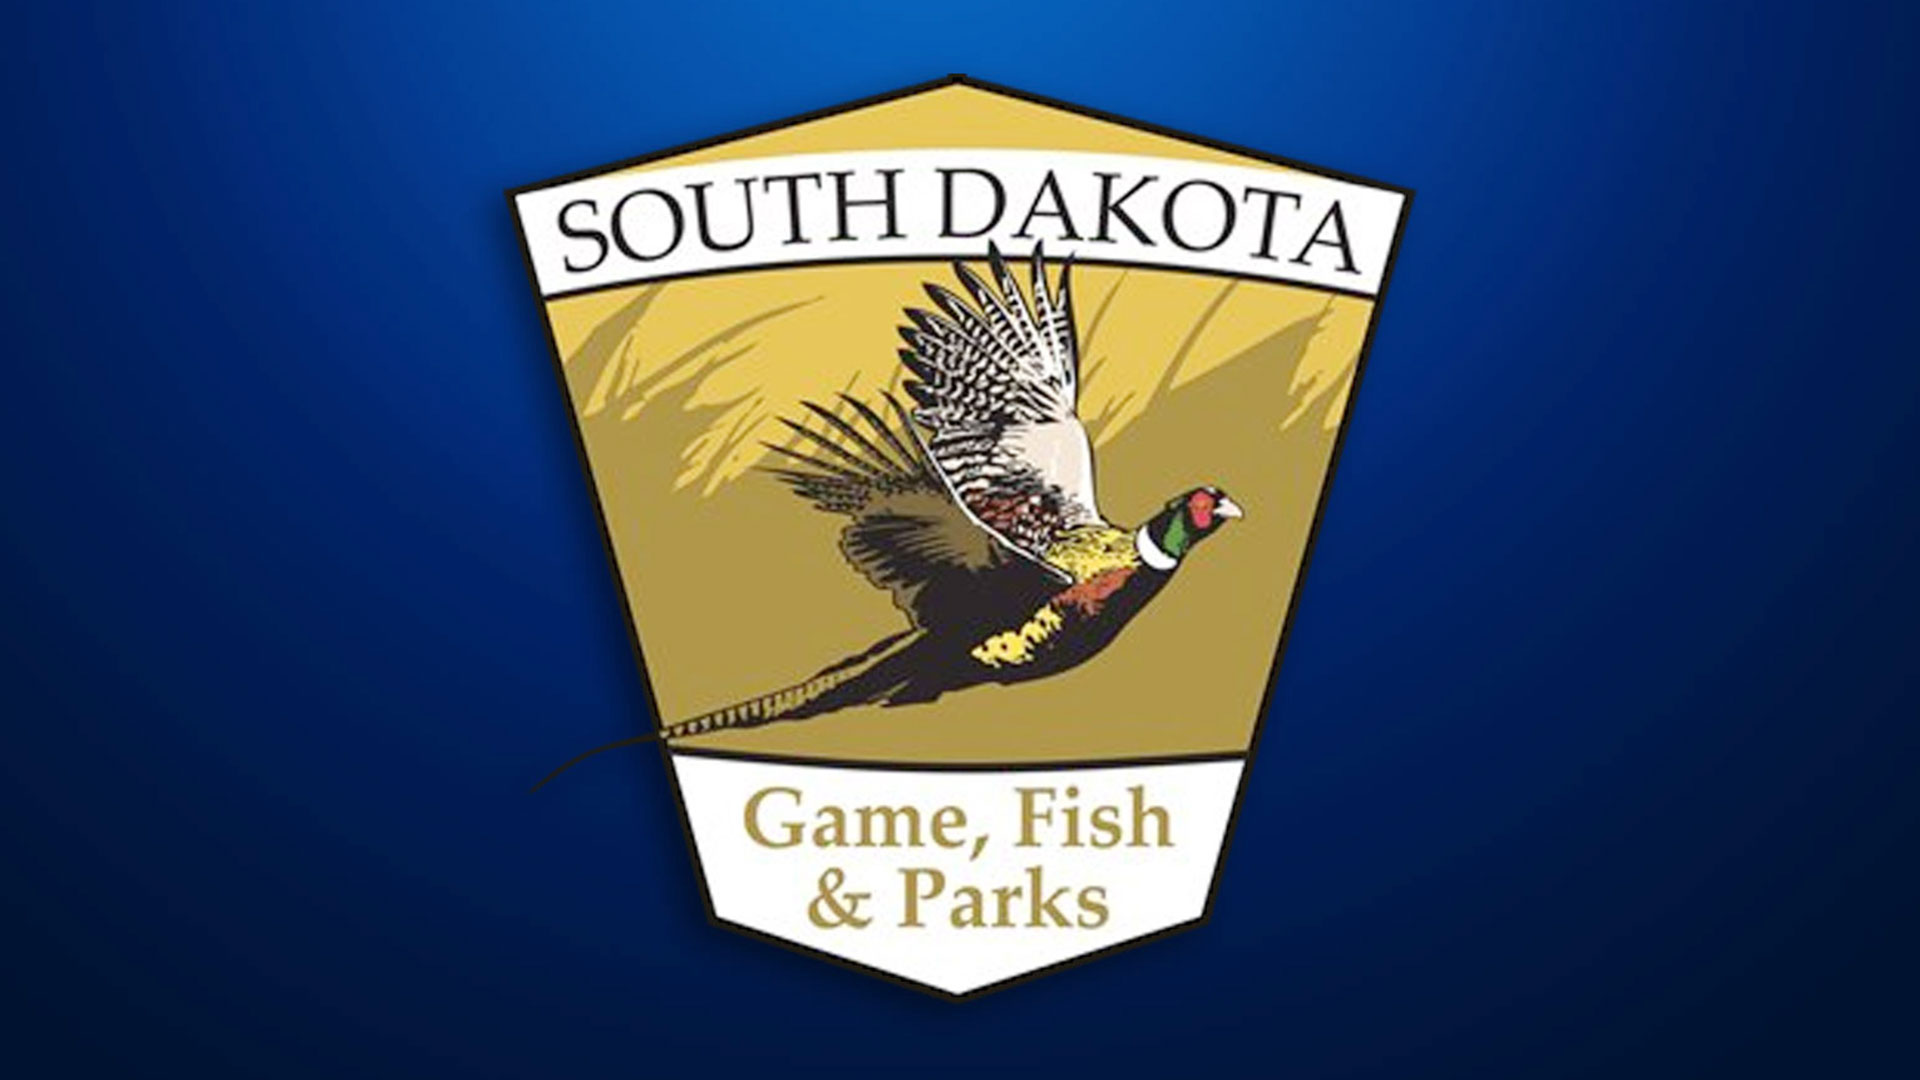 KELO Game Fish and Parks Department